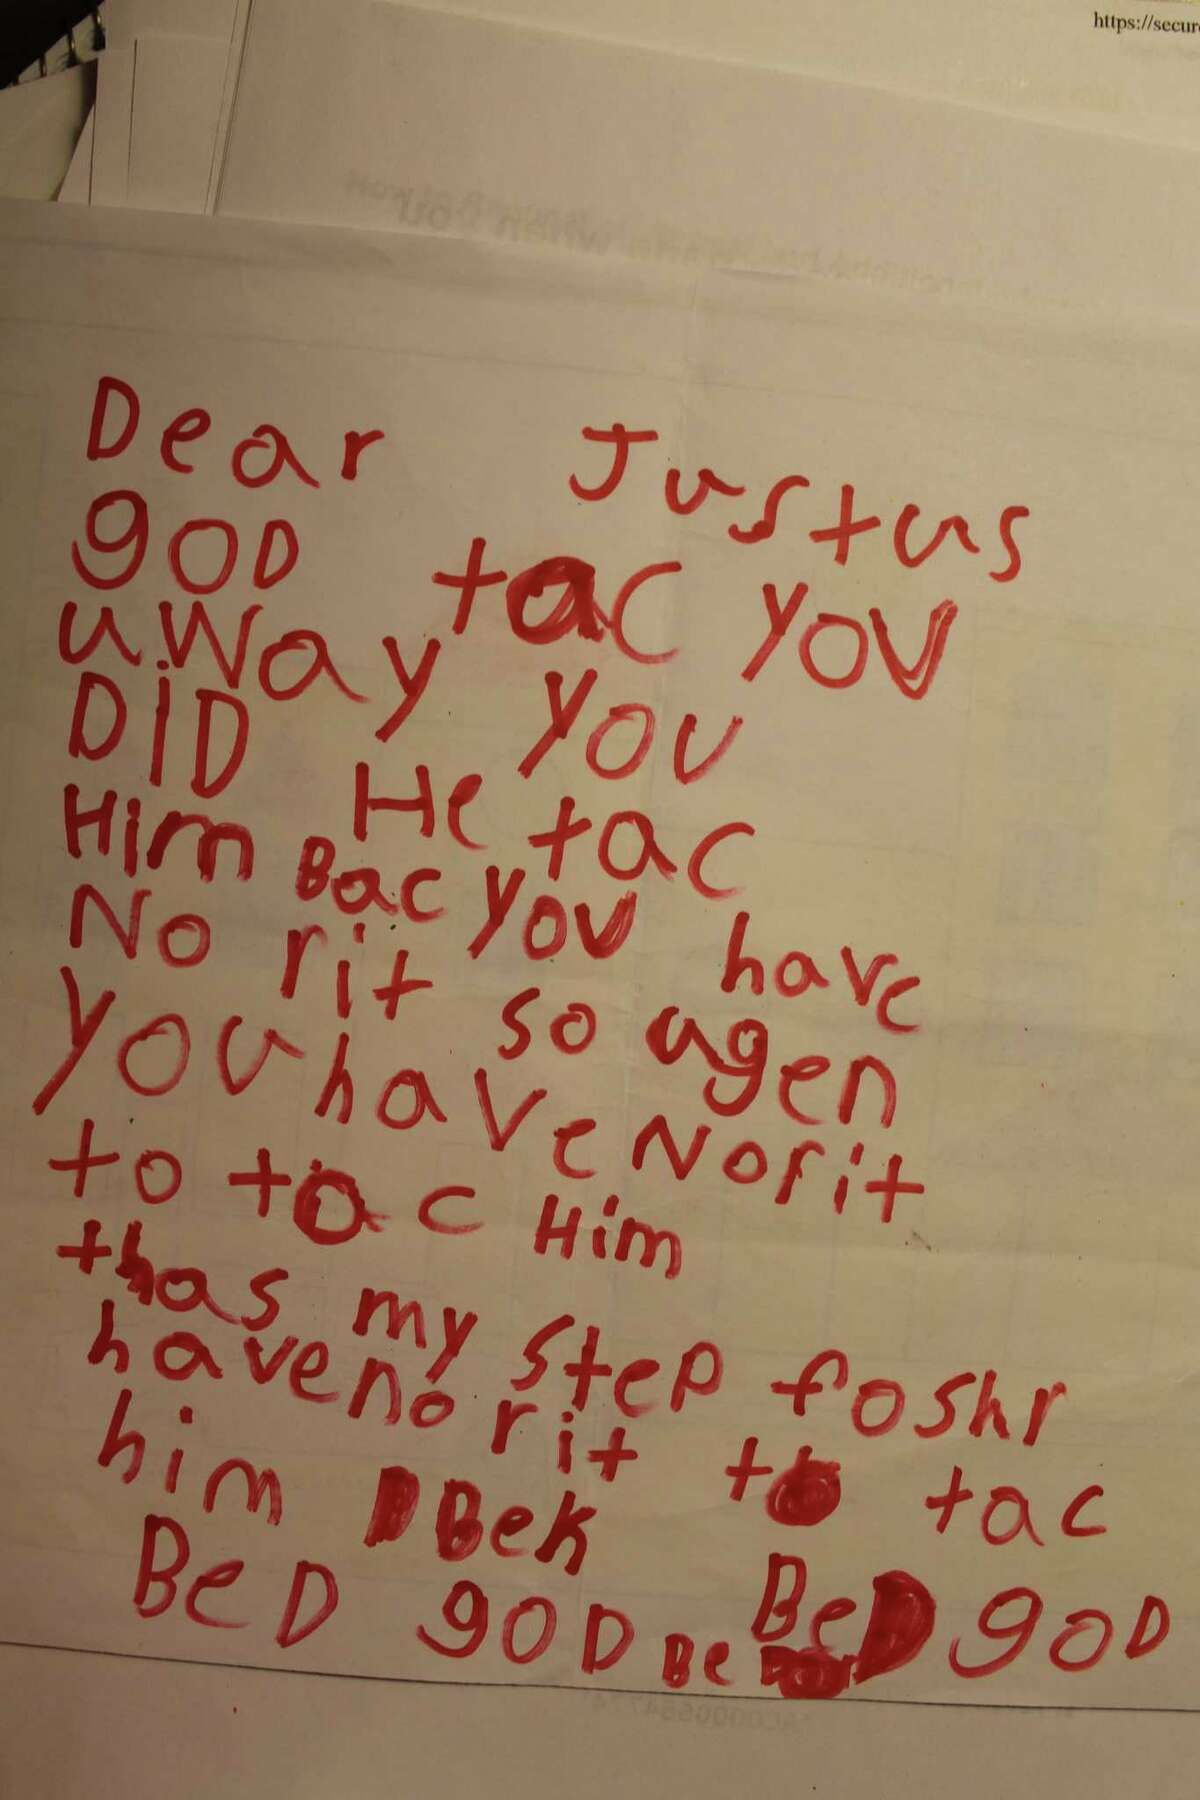 Olivia Torres was 7 when her stepfather, the only father figure she had, was killed. She wrote this letter to Justus but then got so angry at God she directly addresses him. She angrily tells God that He had no right to take her stepdad and ends the letter,